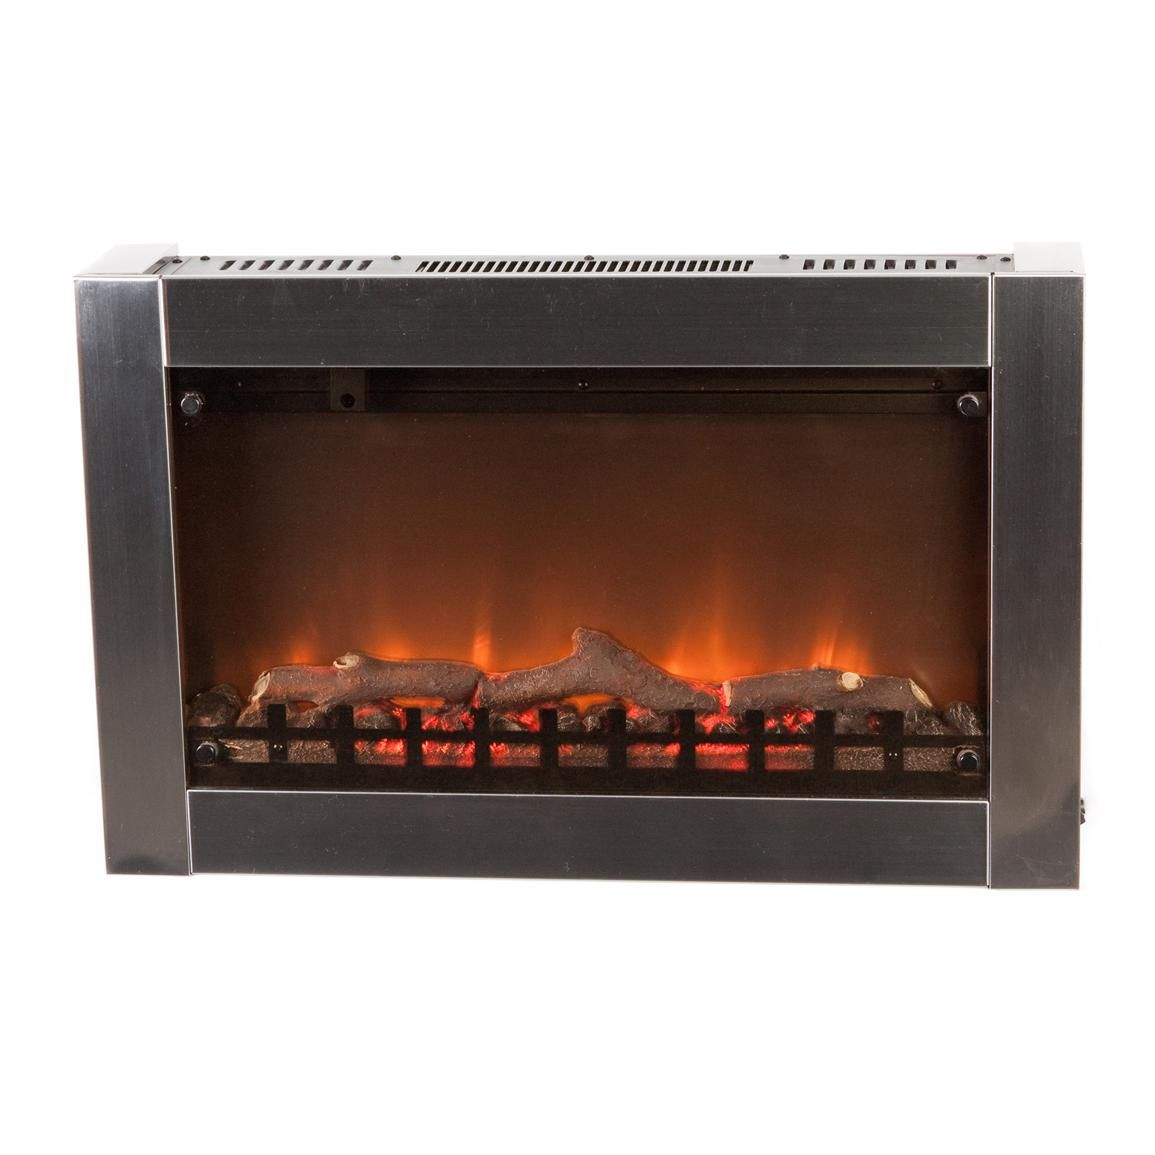 Fire sense black wood wall mounted electric fireplace import it all - Fire Sense Wall Mounted Electric Fireplace Stainless Steel Frame 60758 Wall Mount Electric Fireplace Stainless Steel And Electric Fireplaces